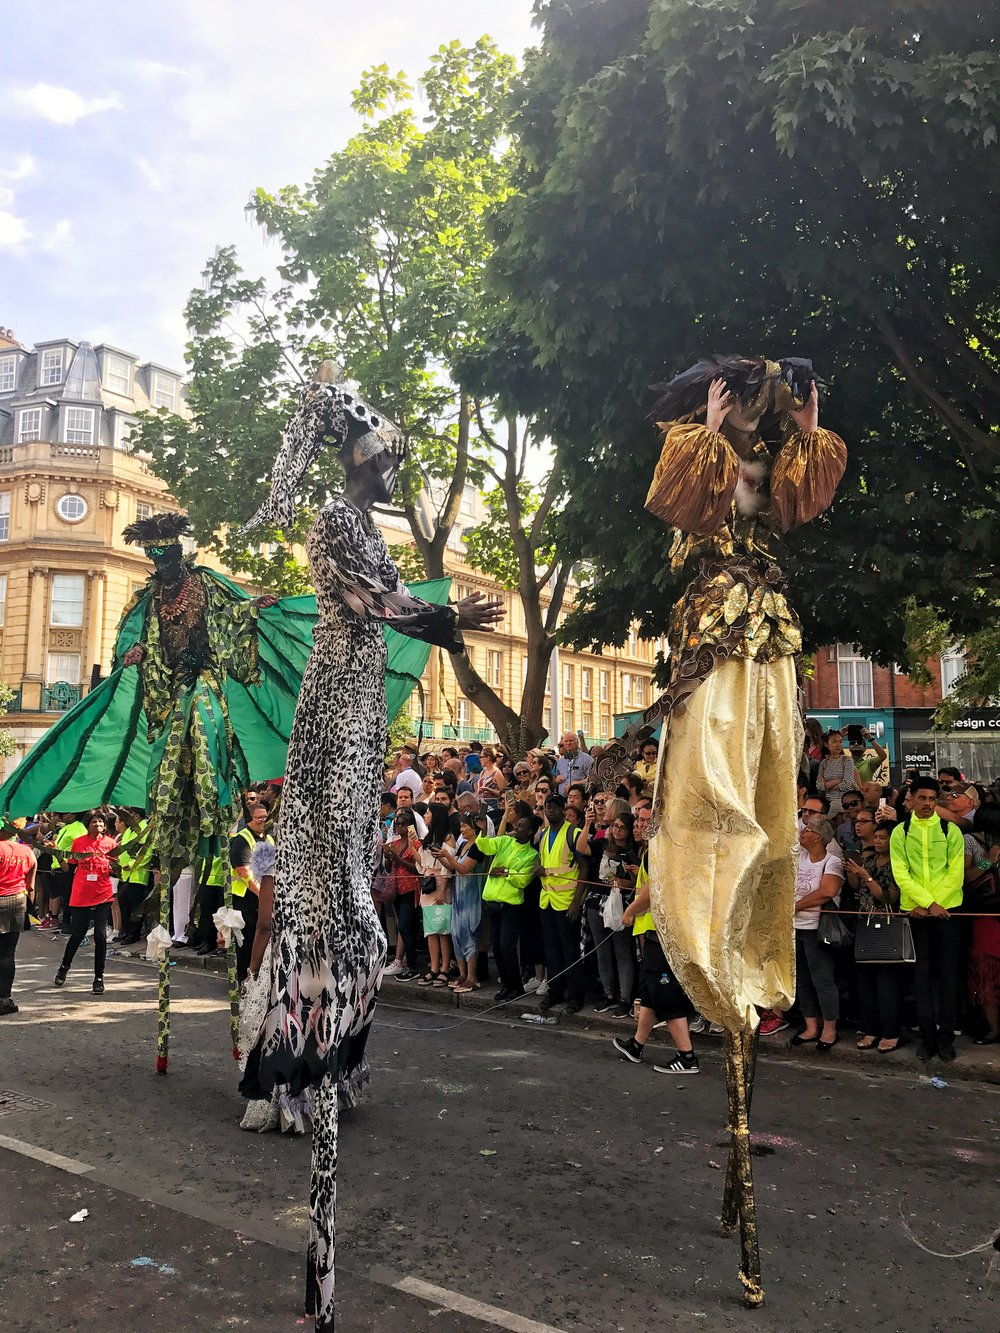 Stilts at Notting Hill Carnival Parade